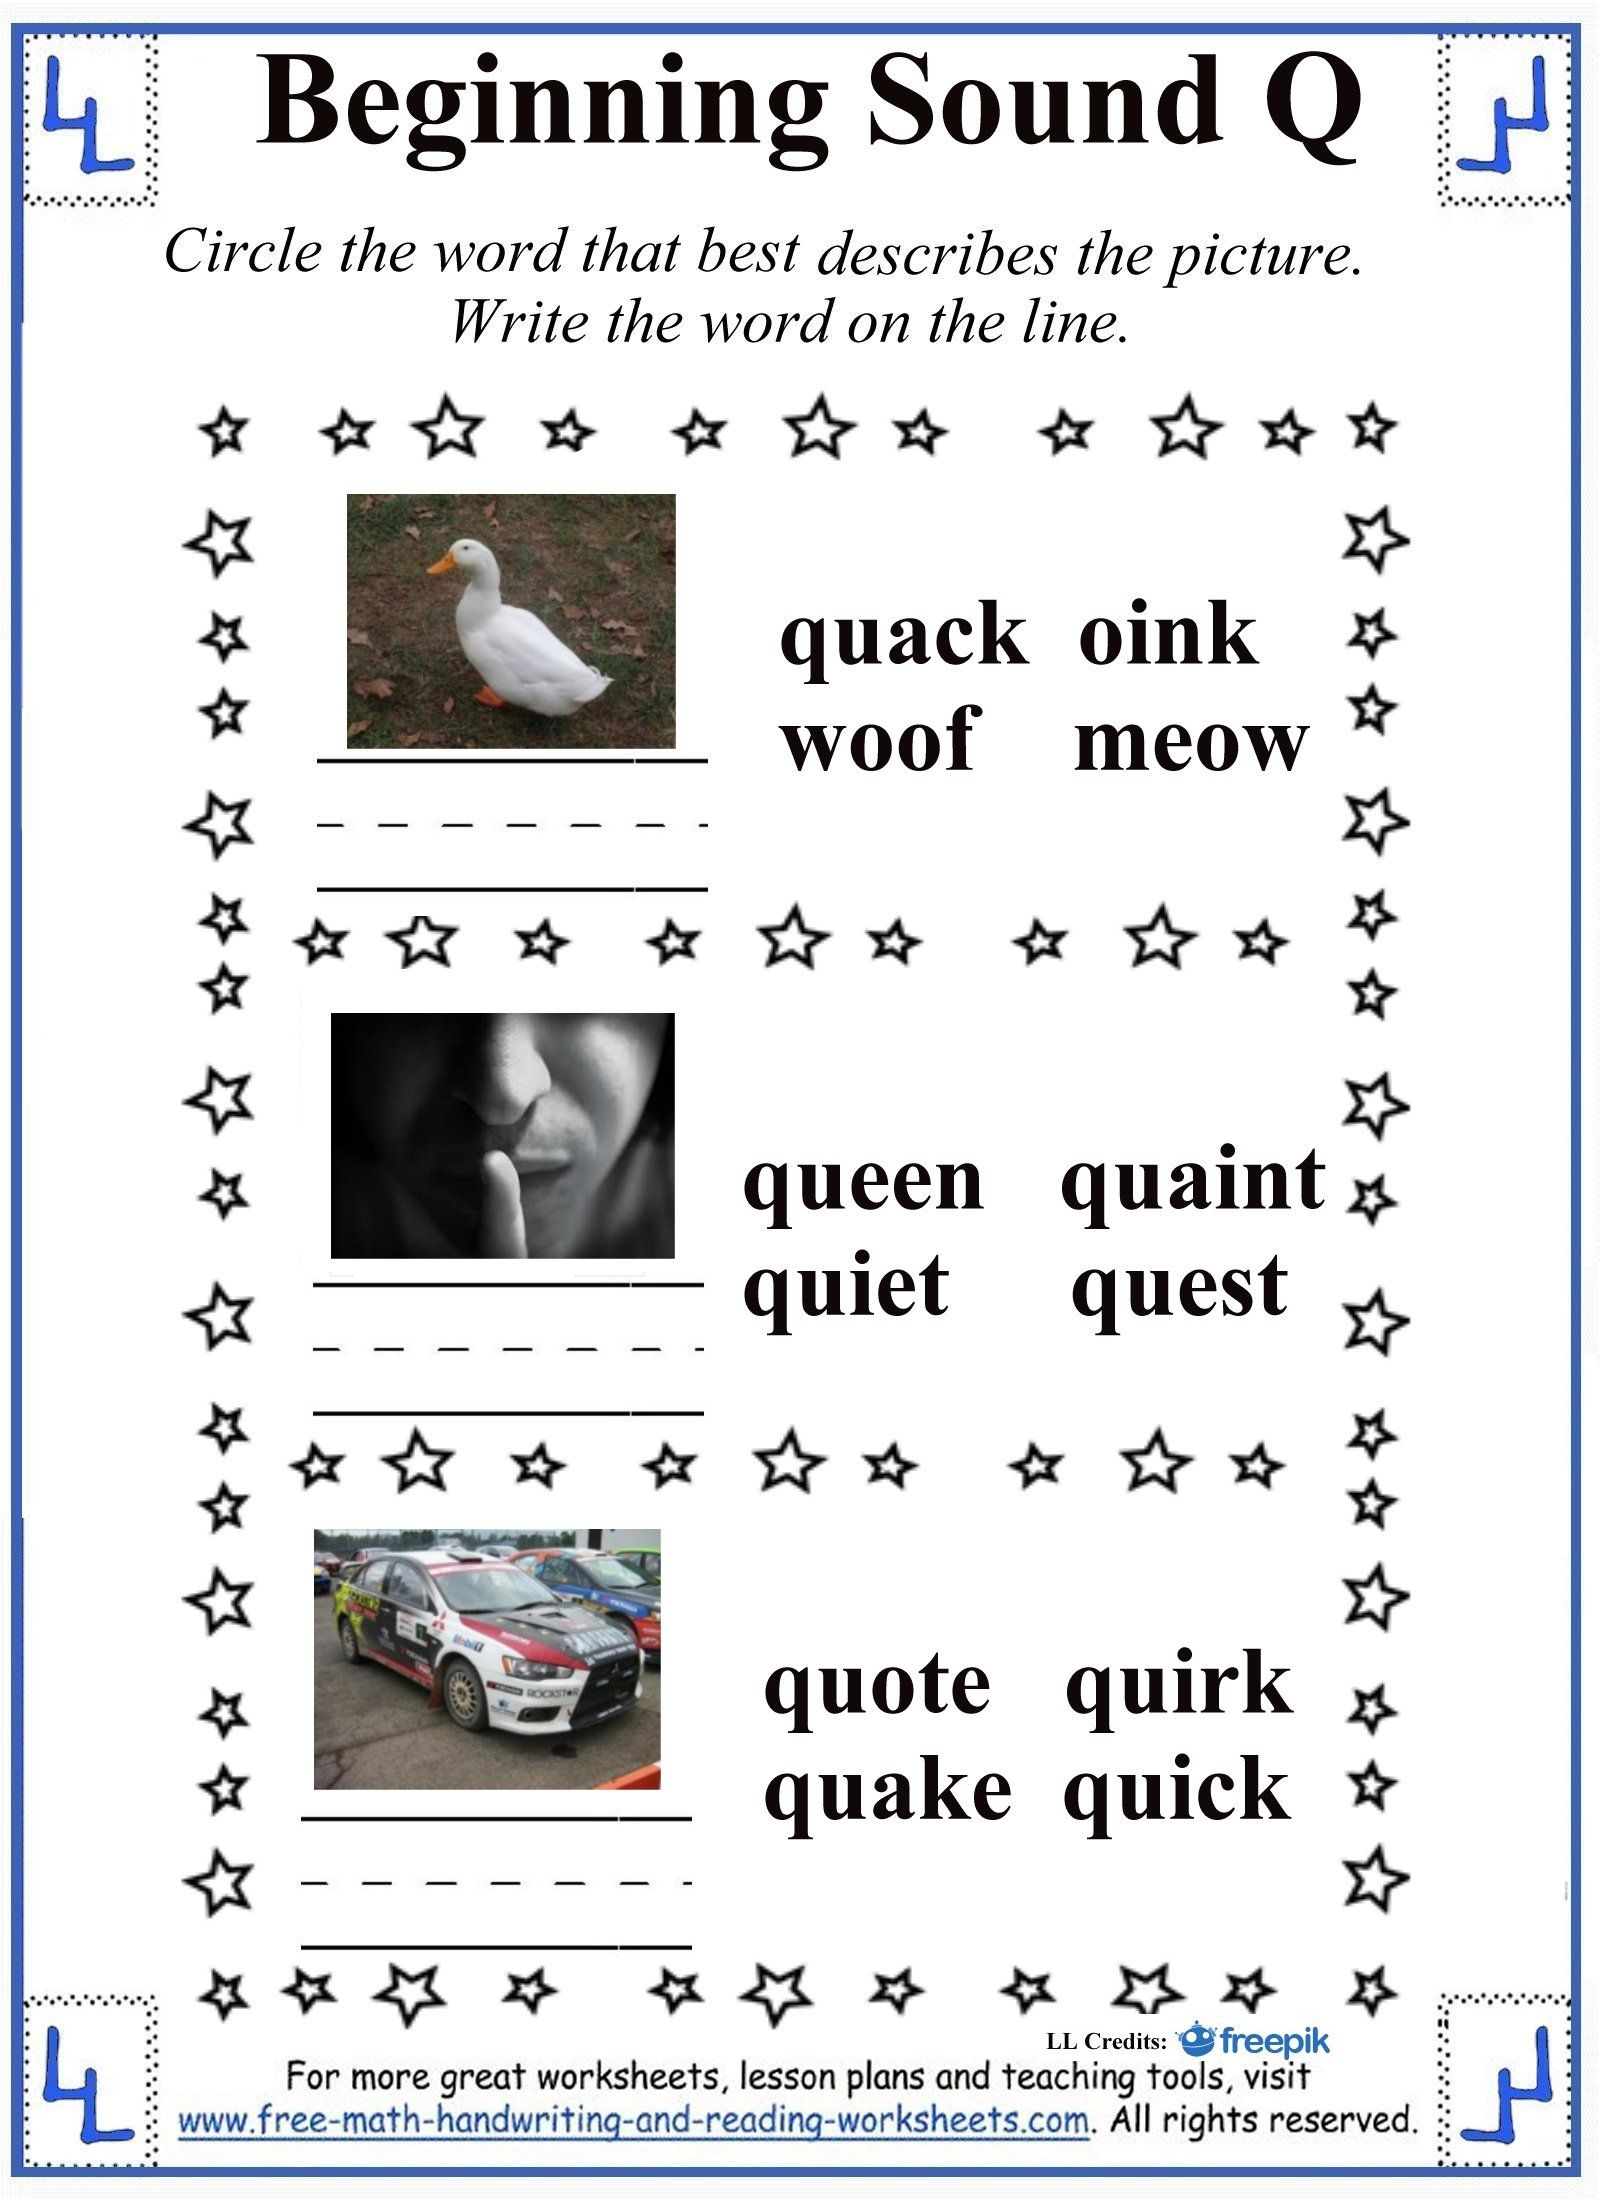 Beginning Sound Letter Q Worksheets